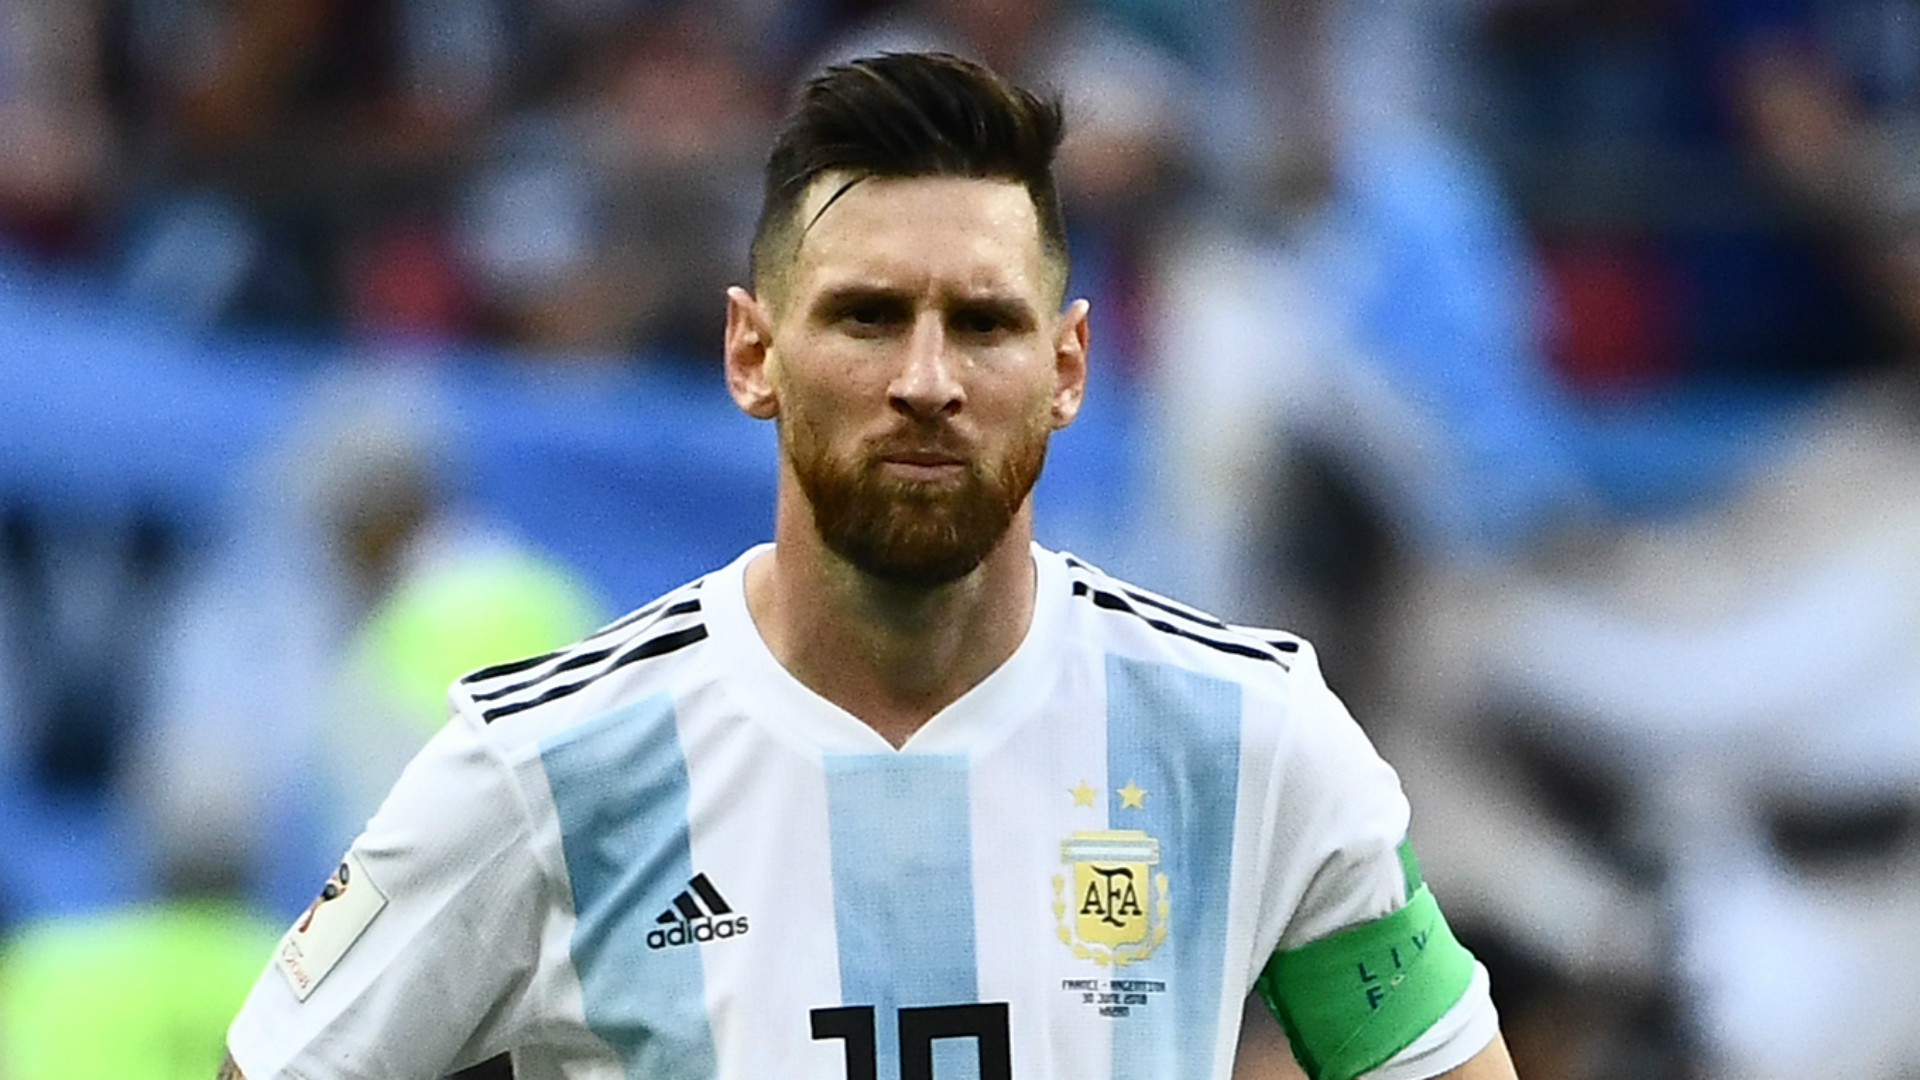 Diego Maradona slams Lionel Messi in weird rant